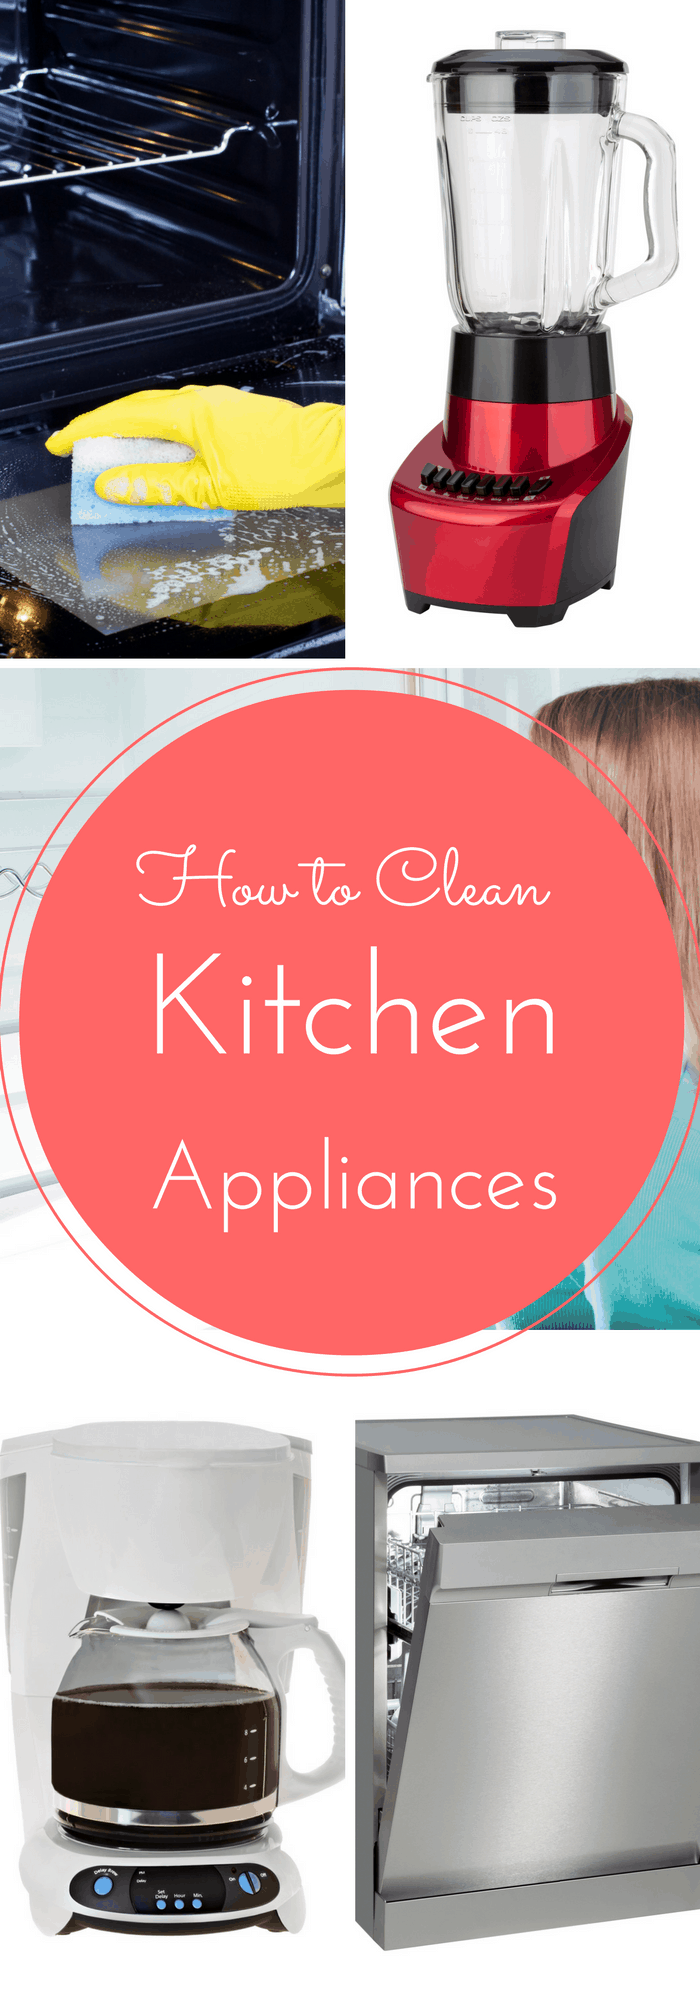 How to clean any kitchen appliance!